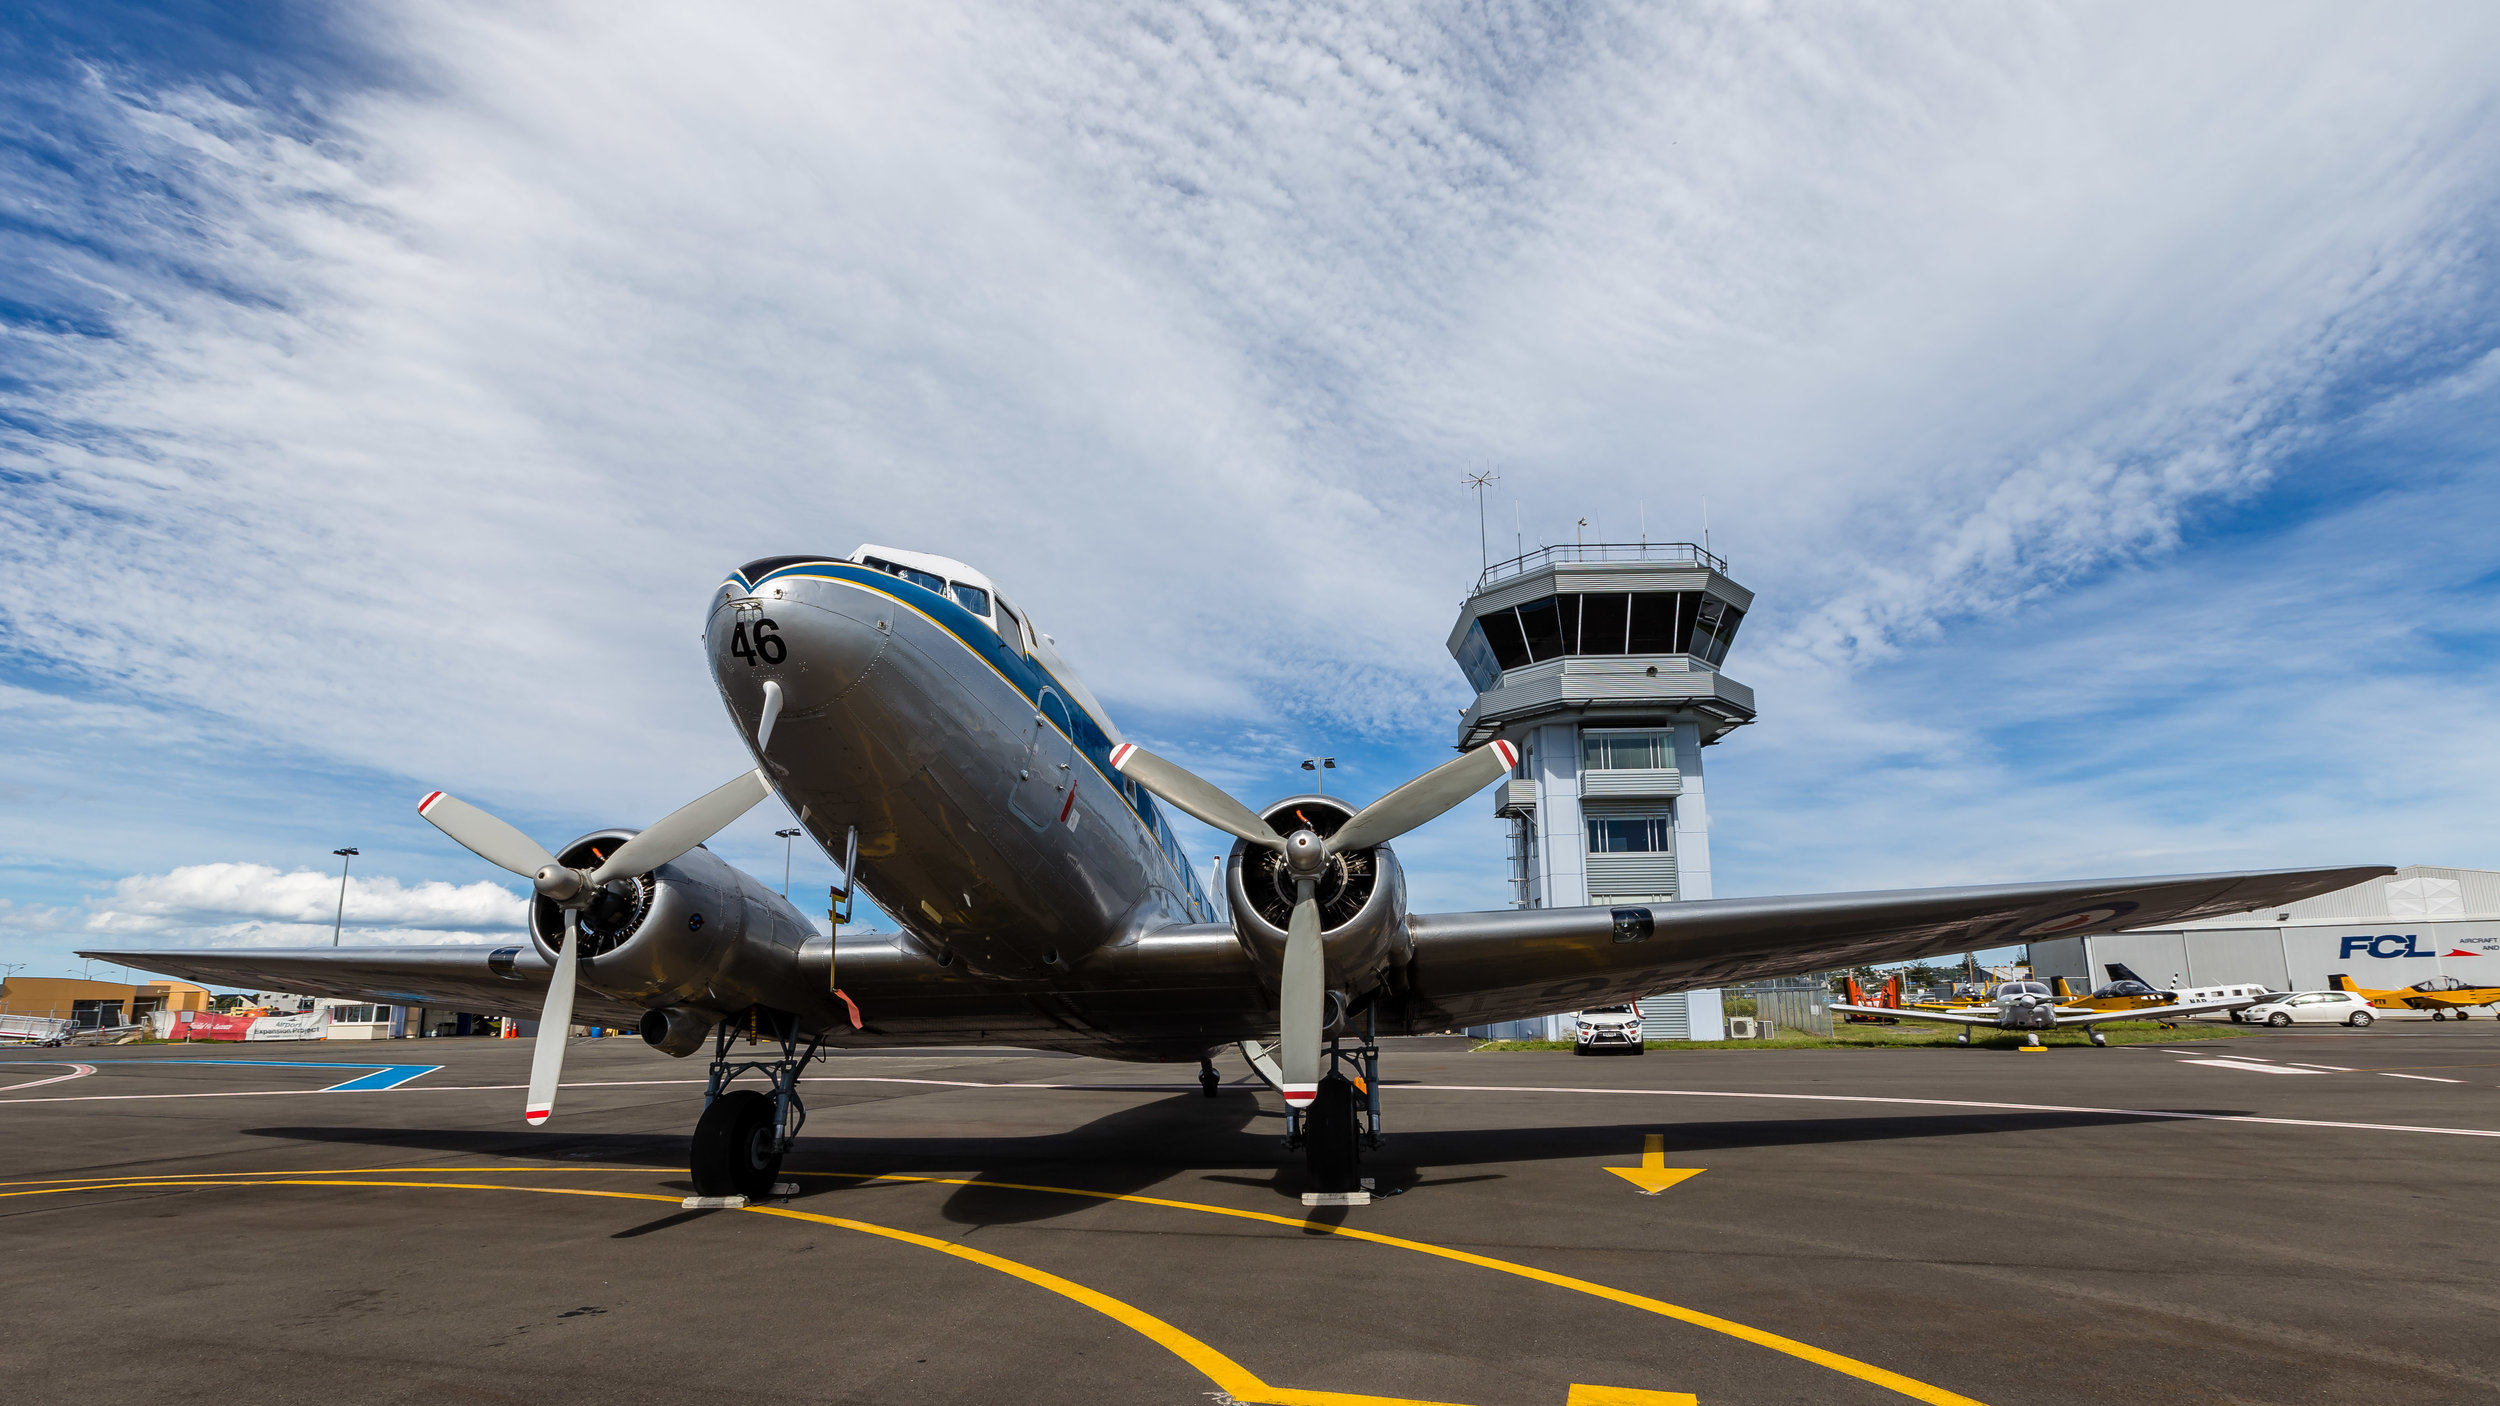 DC3 aircraft parked-up by the Napier Control Tower